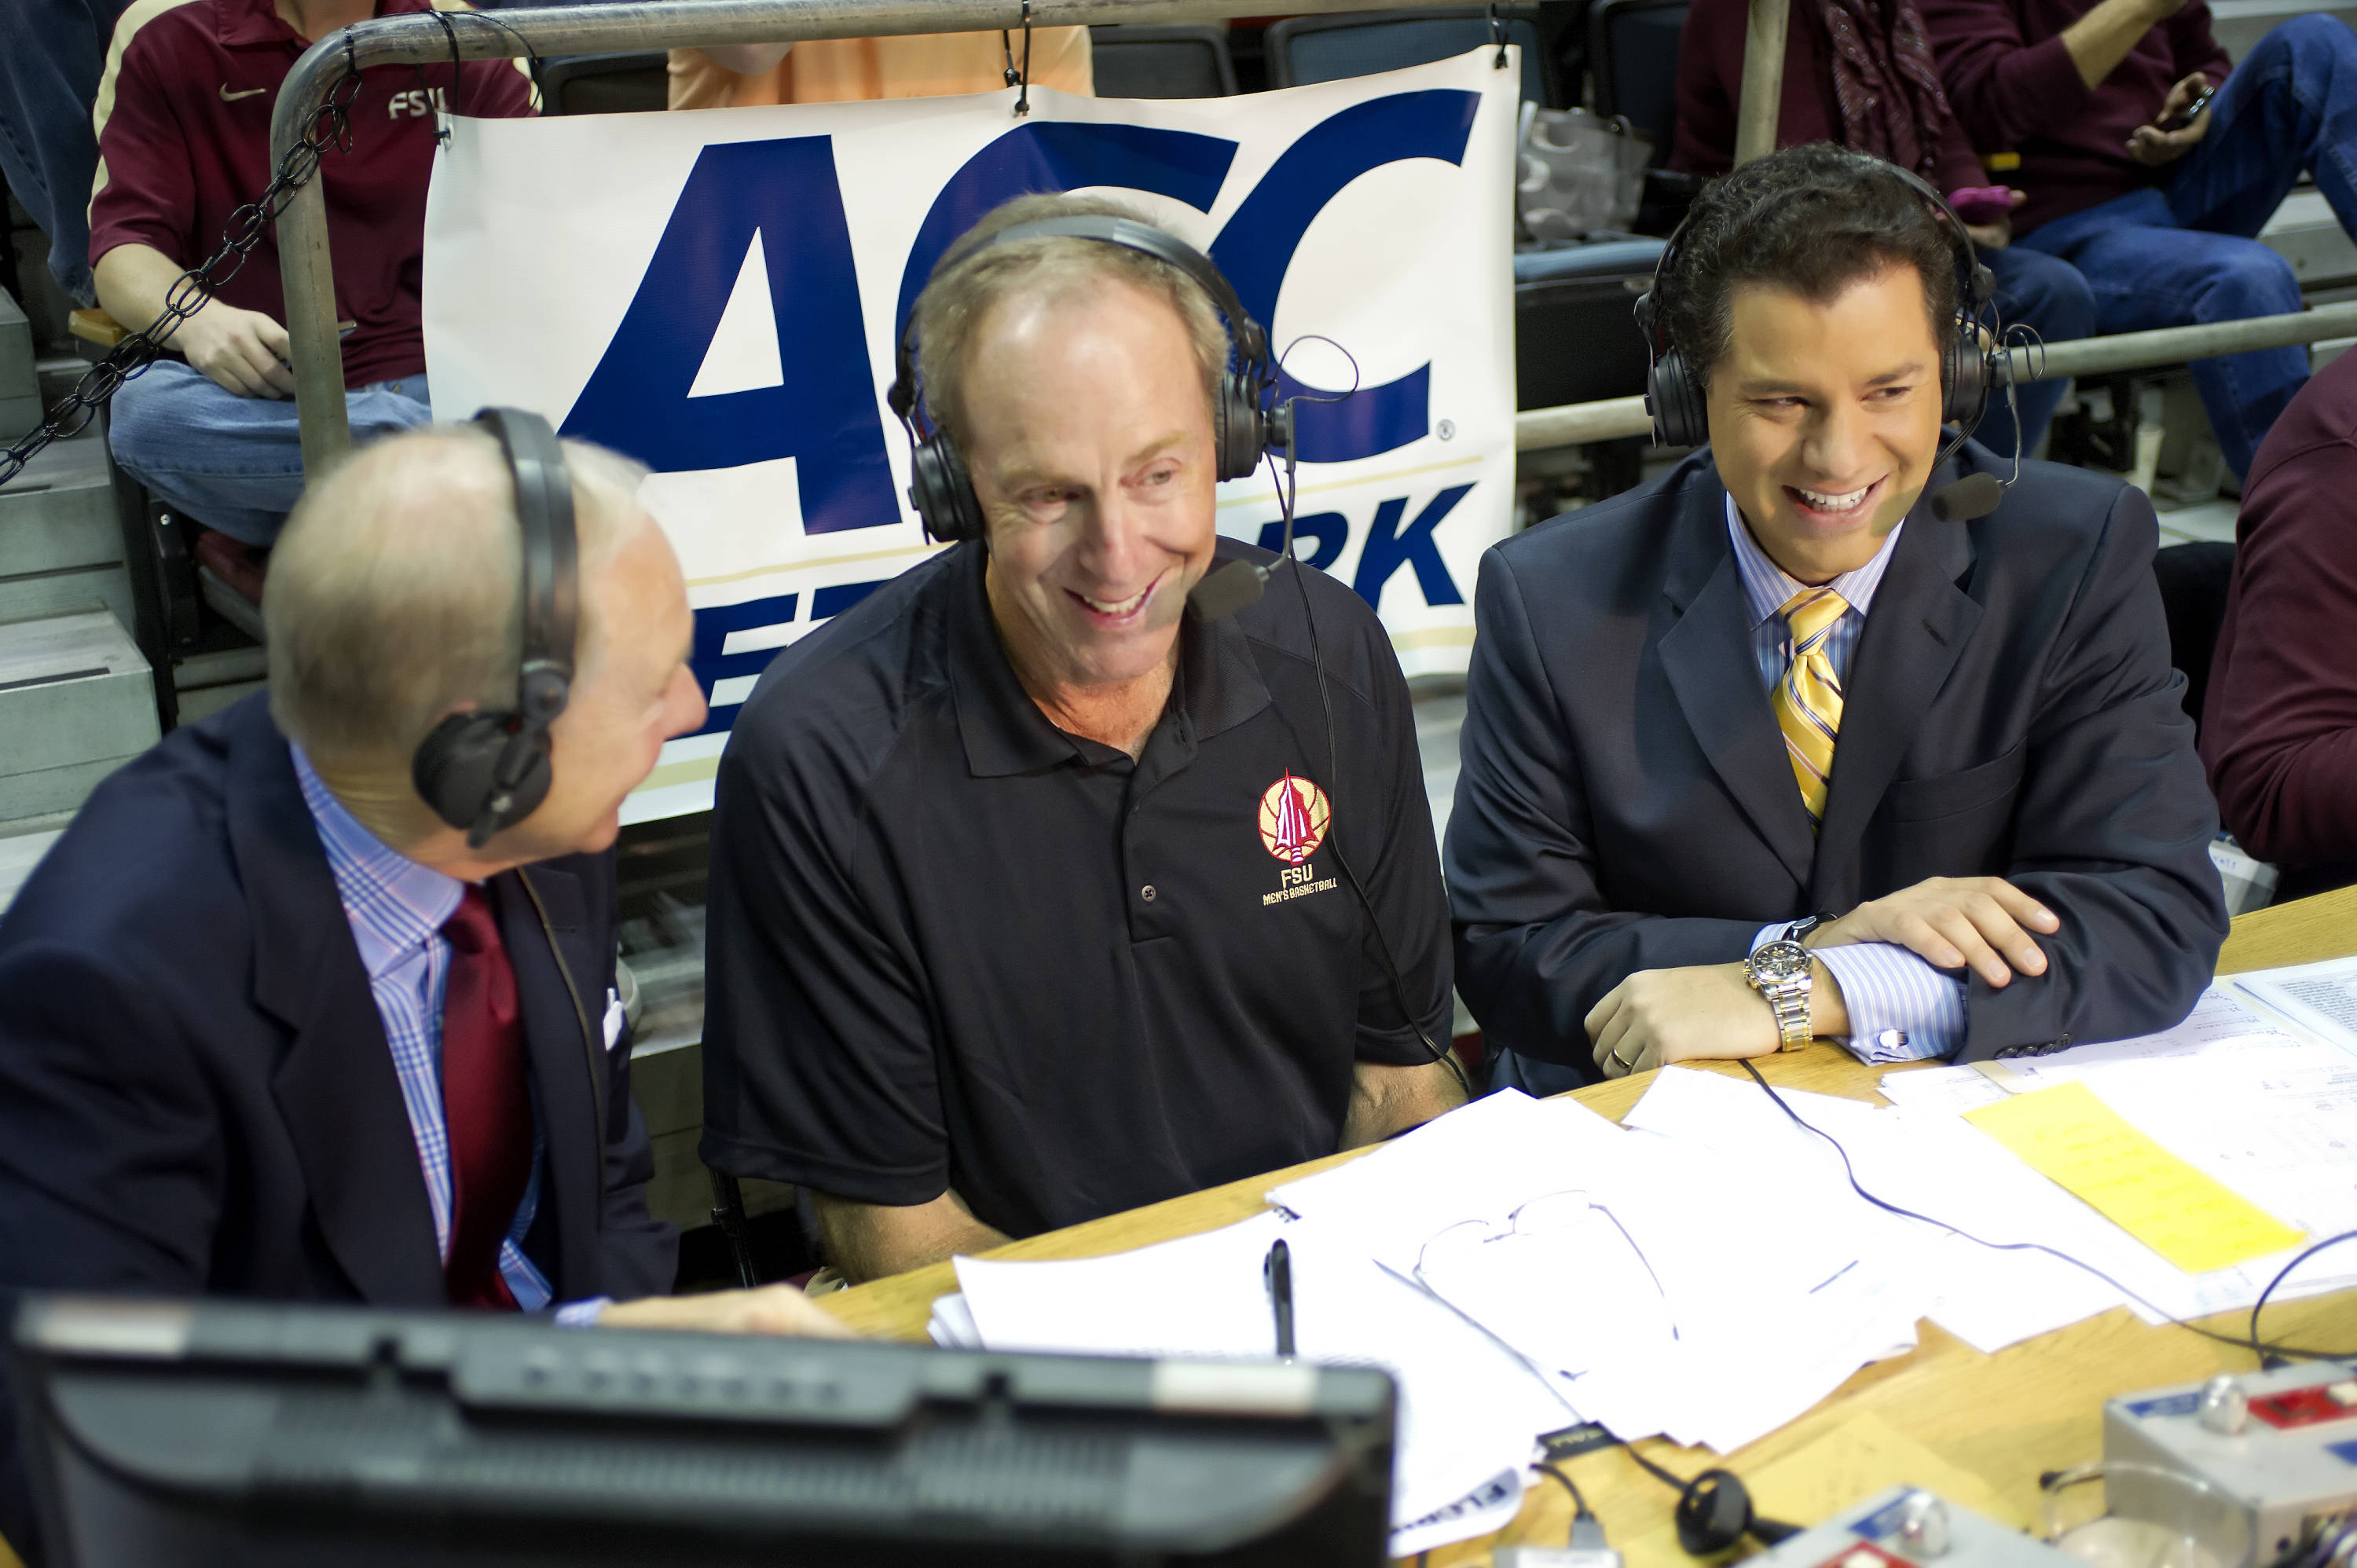 Former FSU and NBA great Dave Cowens (center) returned to Tallahassee for basketball alumni weekend